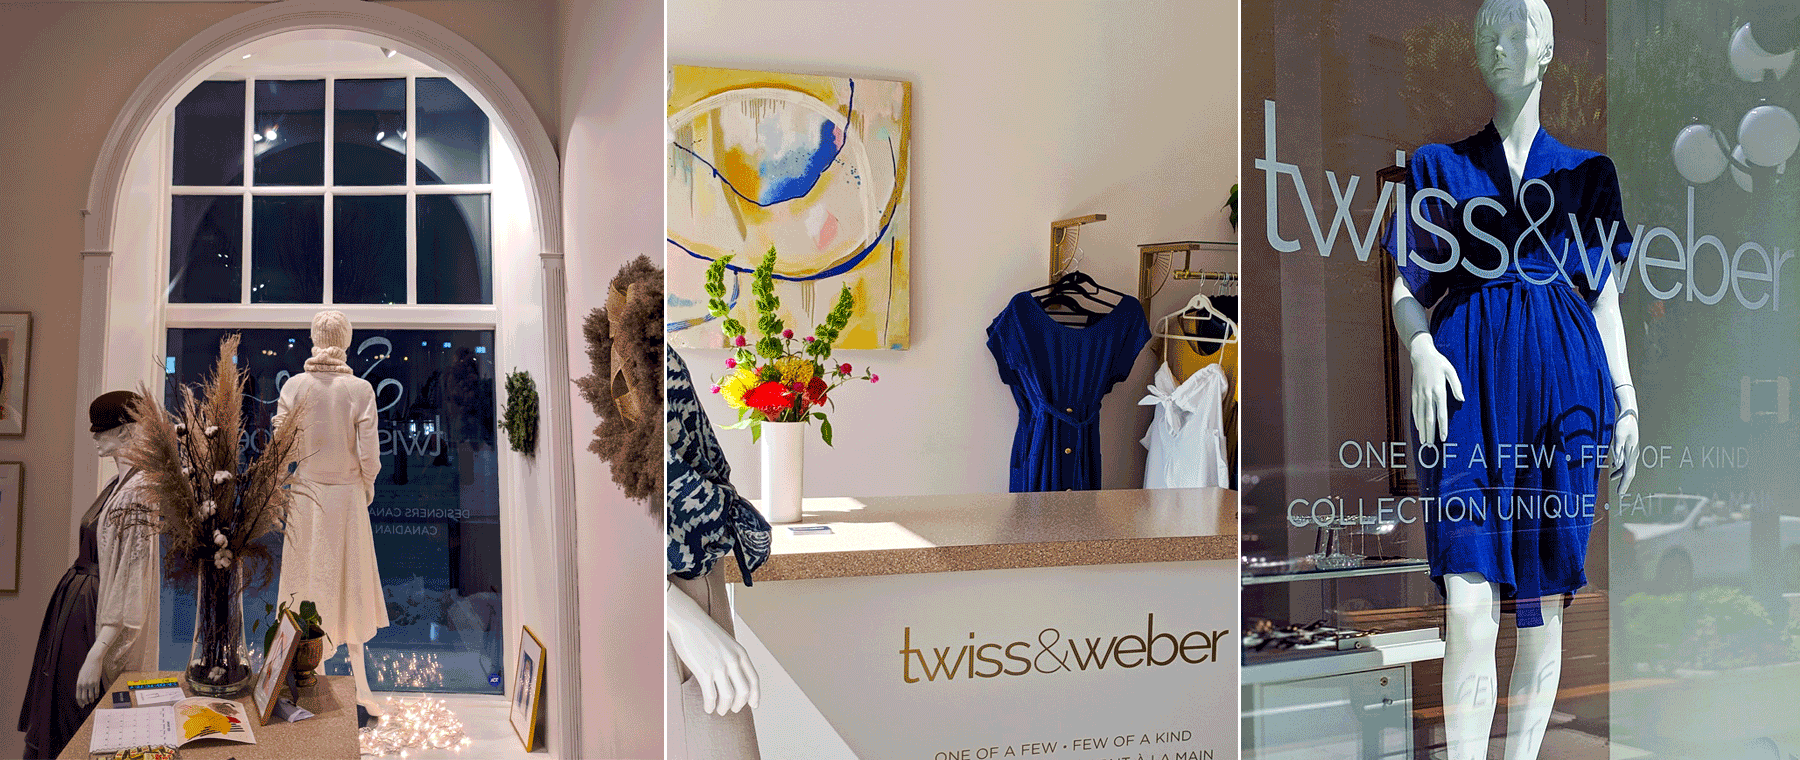 Pivot of the Week: Twiss & Weber moves from Sussex shop to appointment-only